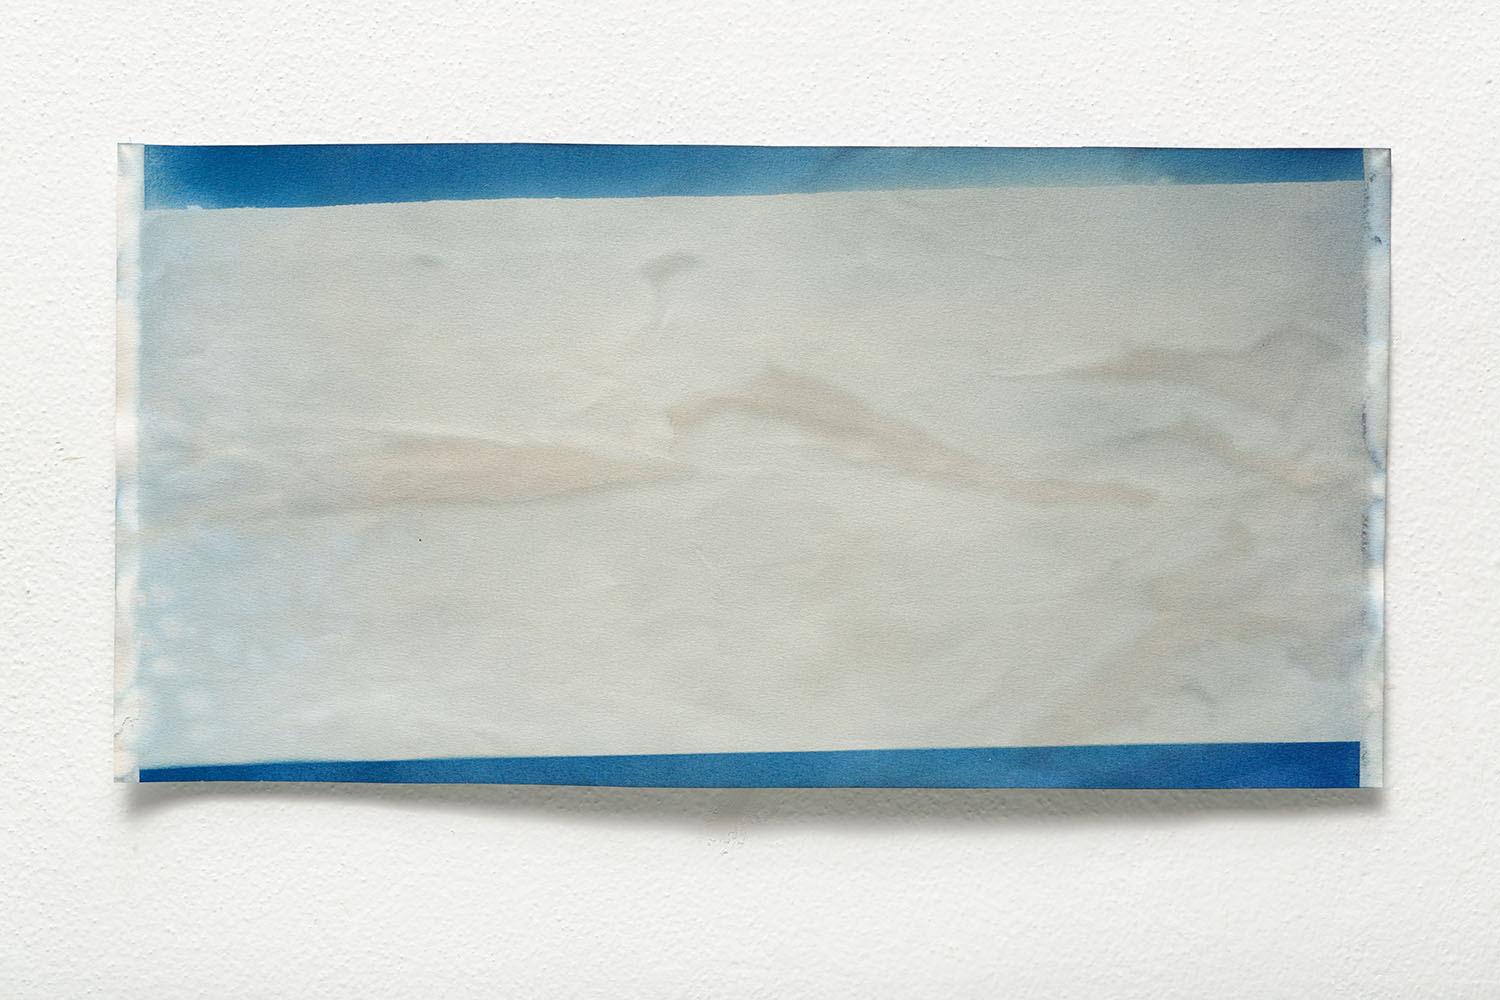 Landscape by light no. 1 / 28 x 48 cm / kianothypy on paper / 2015